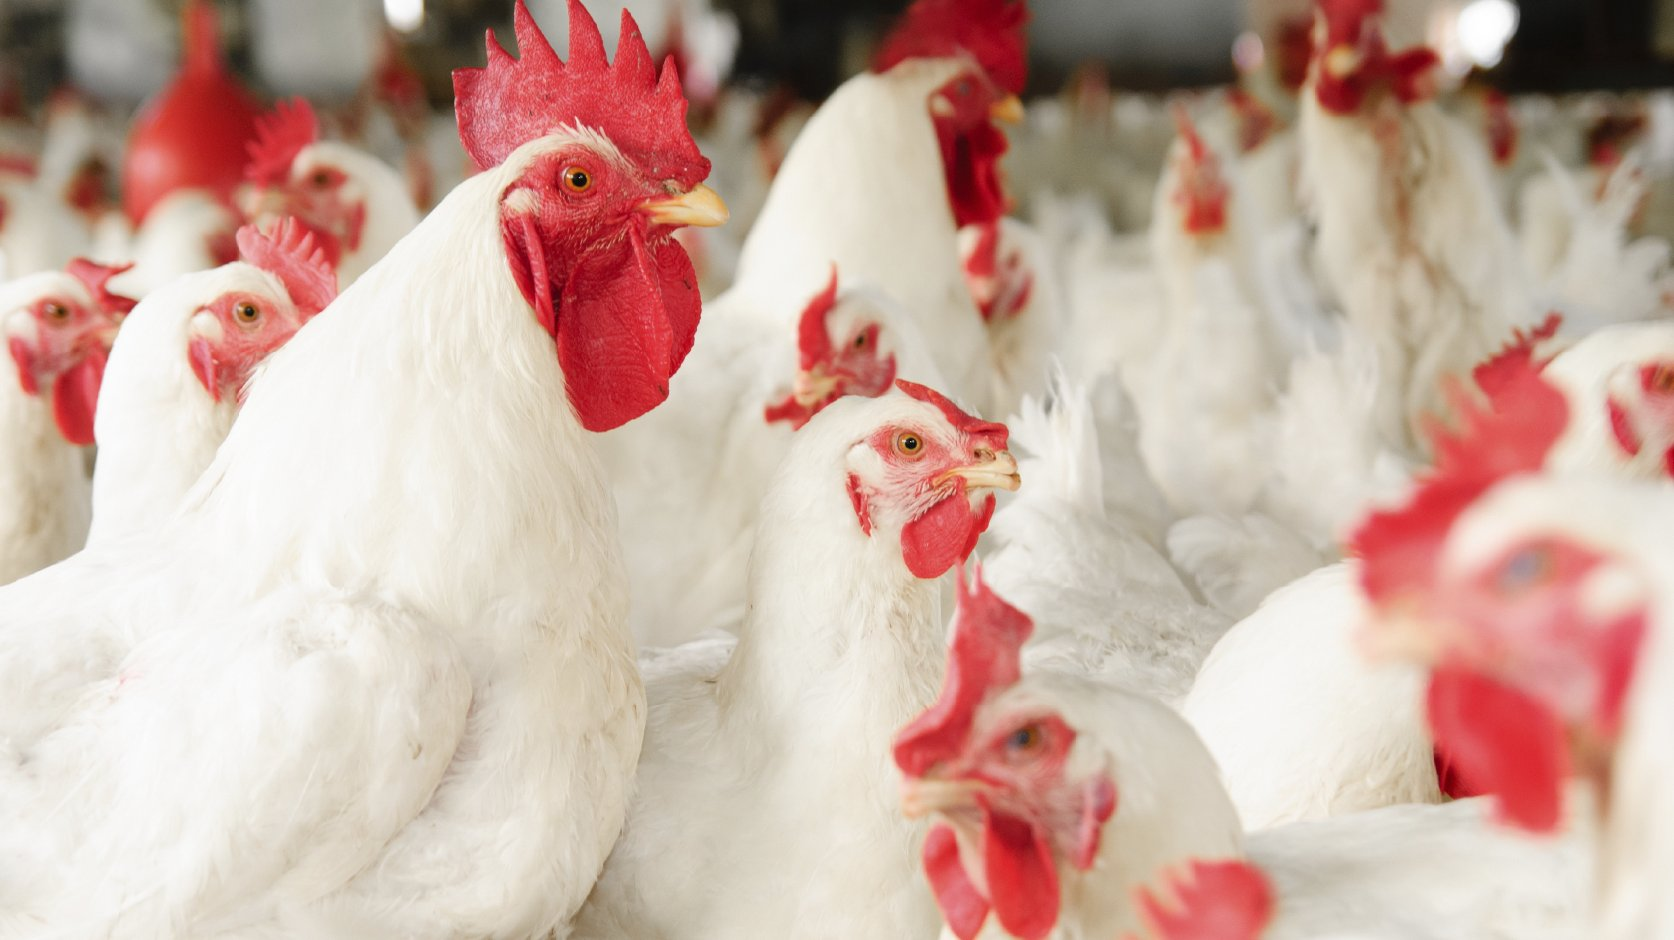 Do these chickens look medicated? Photo: iStockphoto